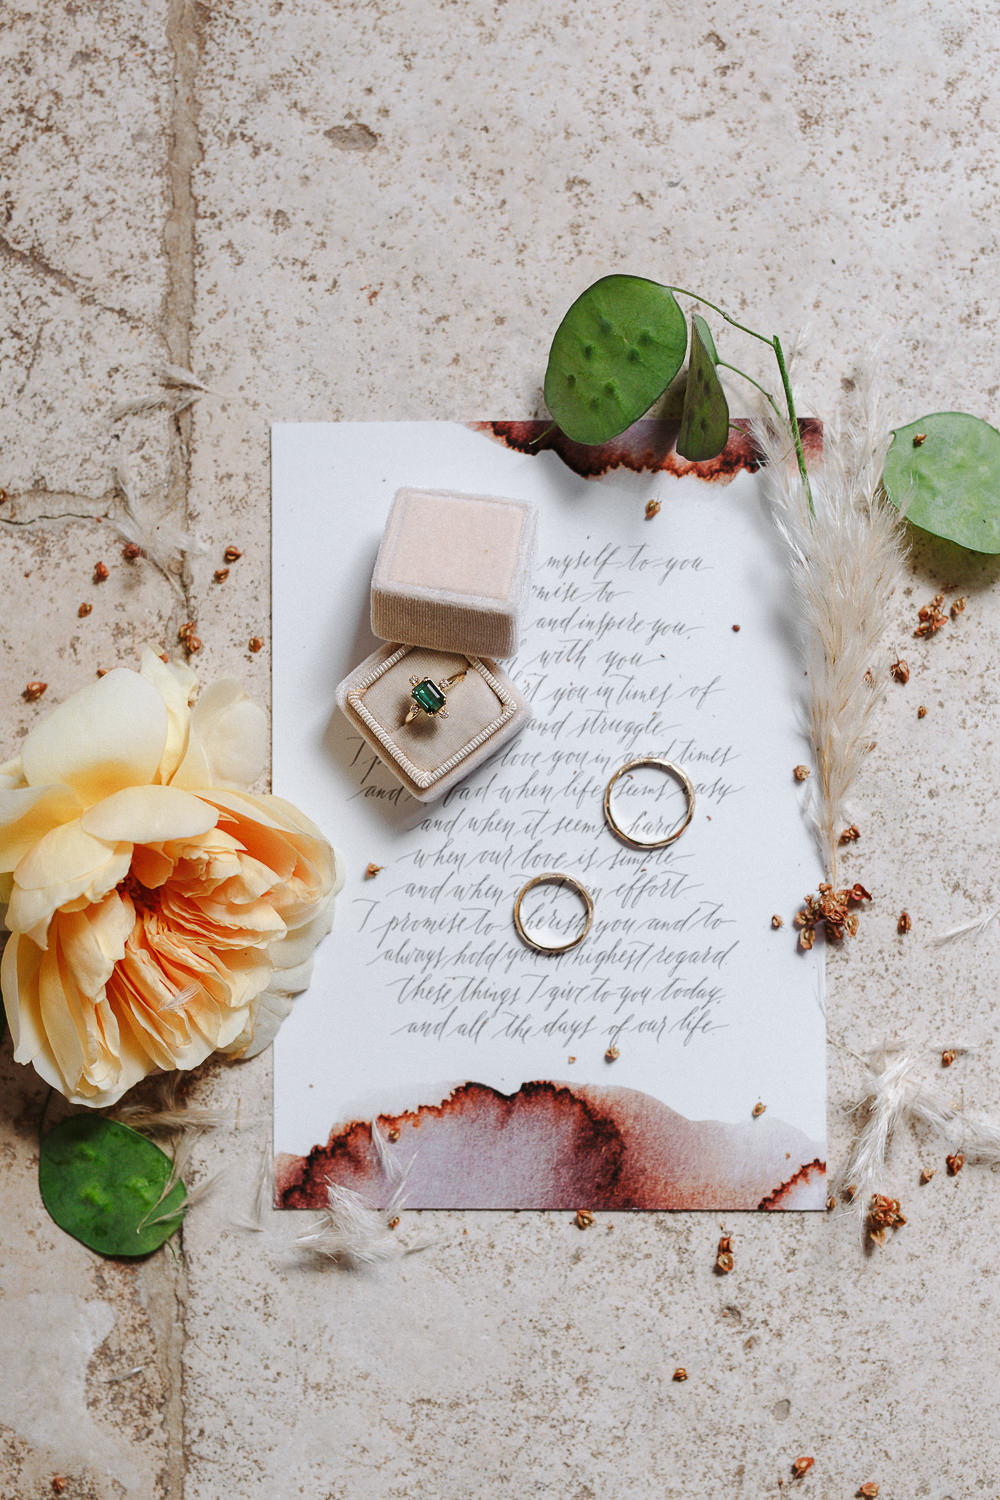 Momdern calligraphy wedding vows | Design & Calligraphy: Camilla Anchisi Design | Photography: Camilla Anchisi Photography